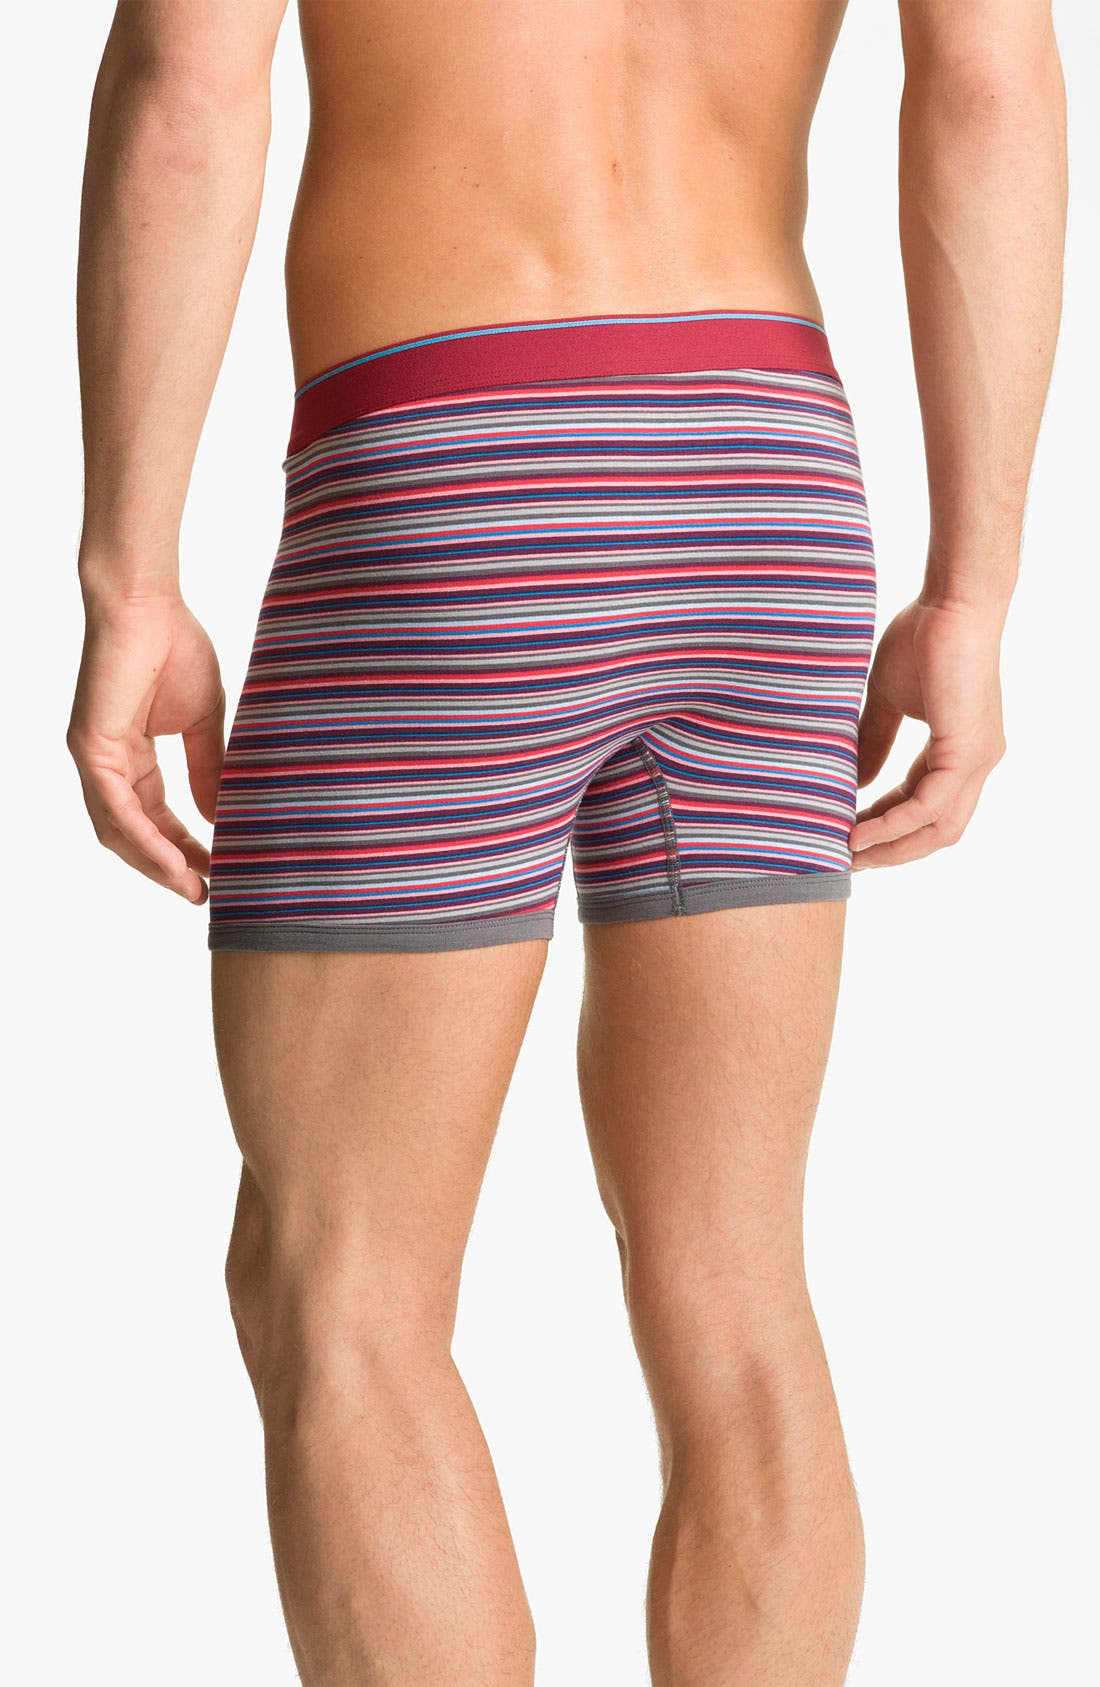 Alternate Image 2  - Basic Underwear Novelty Stripe Boxer Briefs (3-Pack)